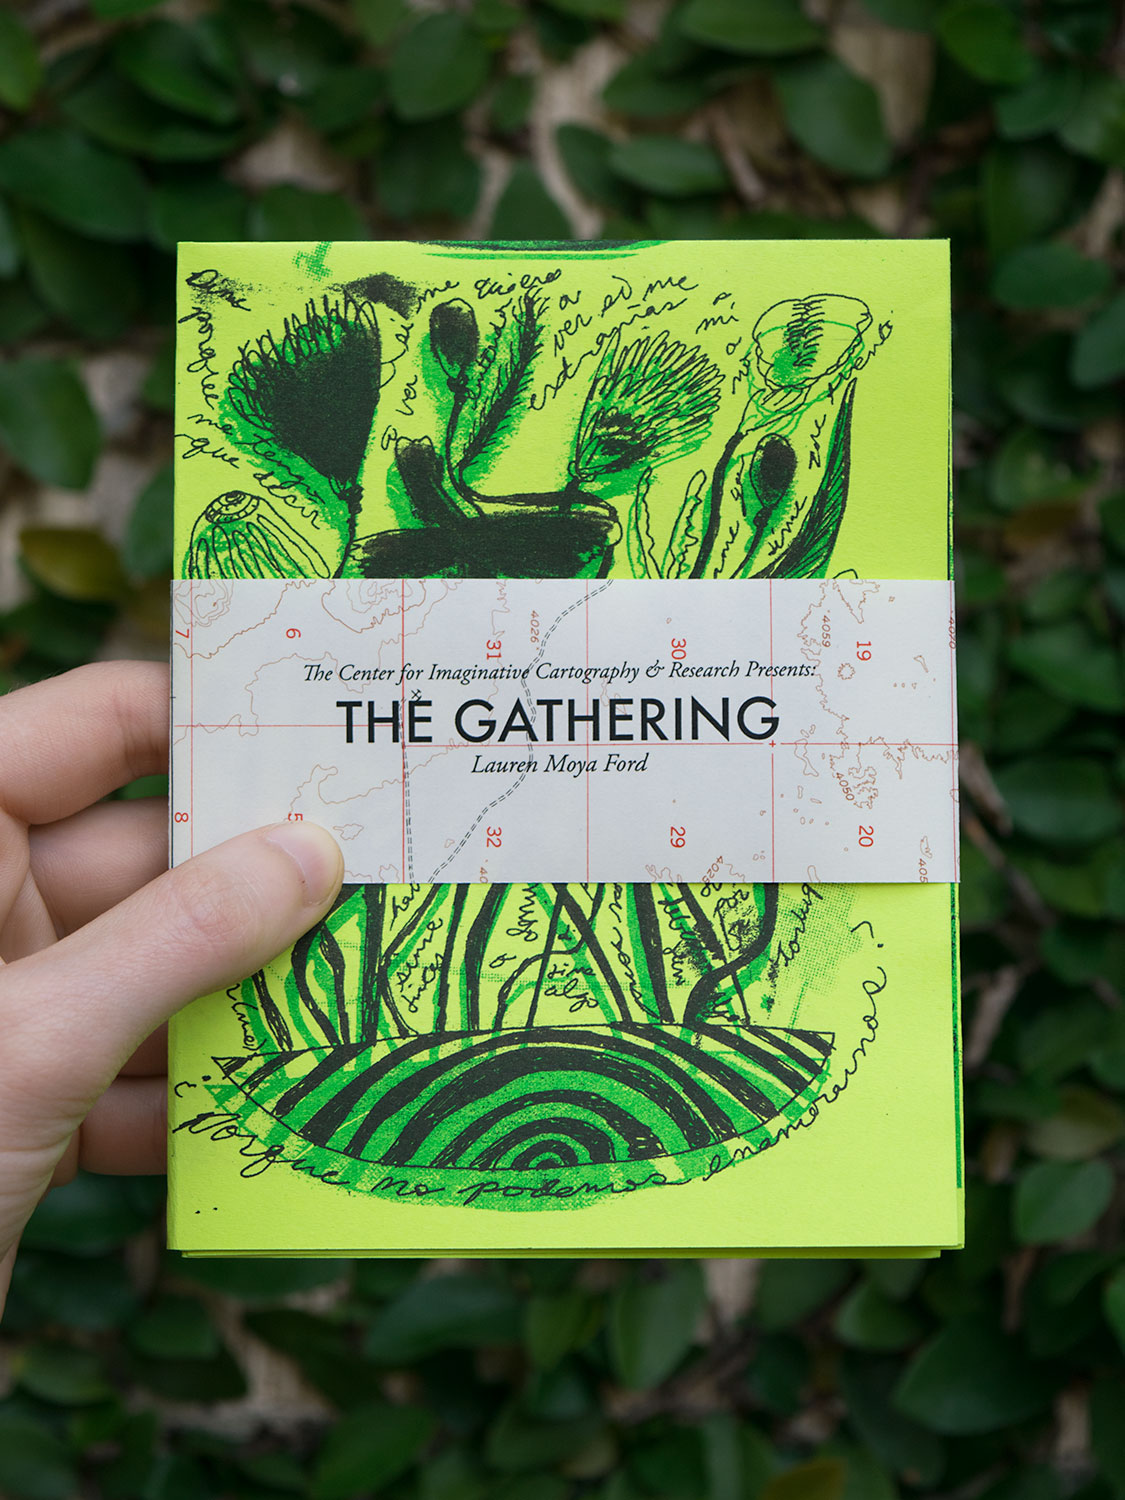 center_presents-the_gathing-cover-1500x1125.jpg